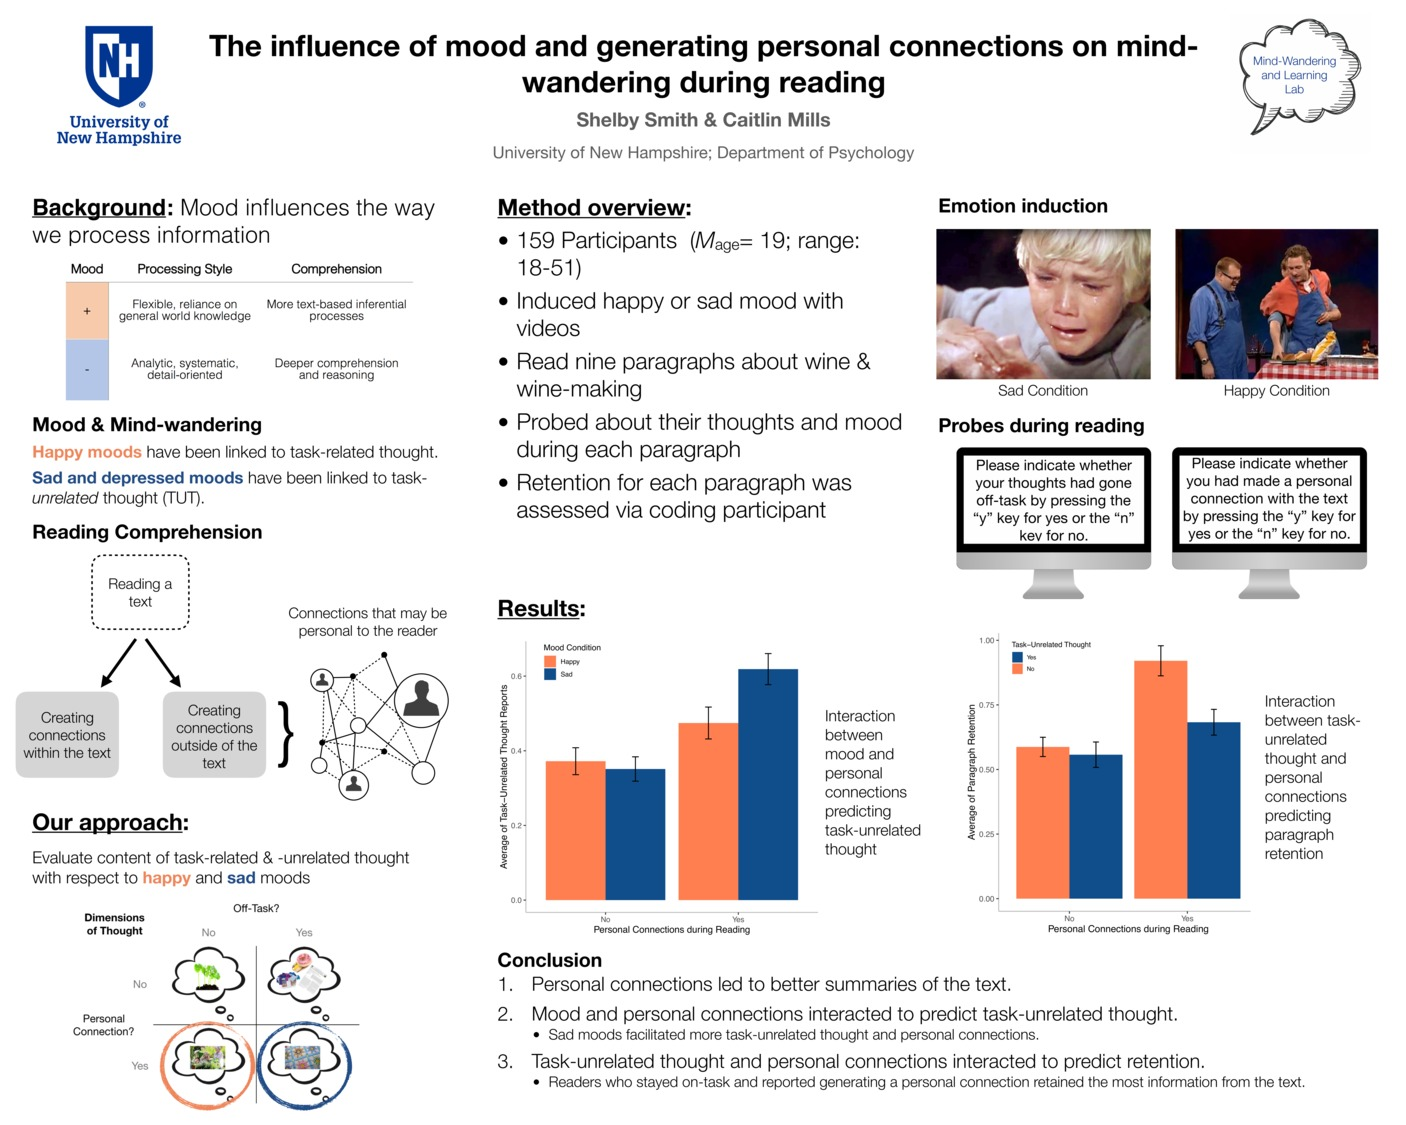 The Influence Of Mood And Generating Personal Connections On Mind-Wandering During Reading by sls1085